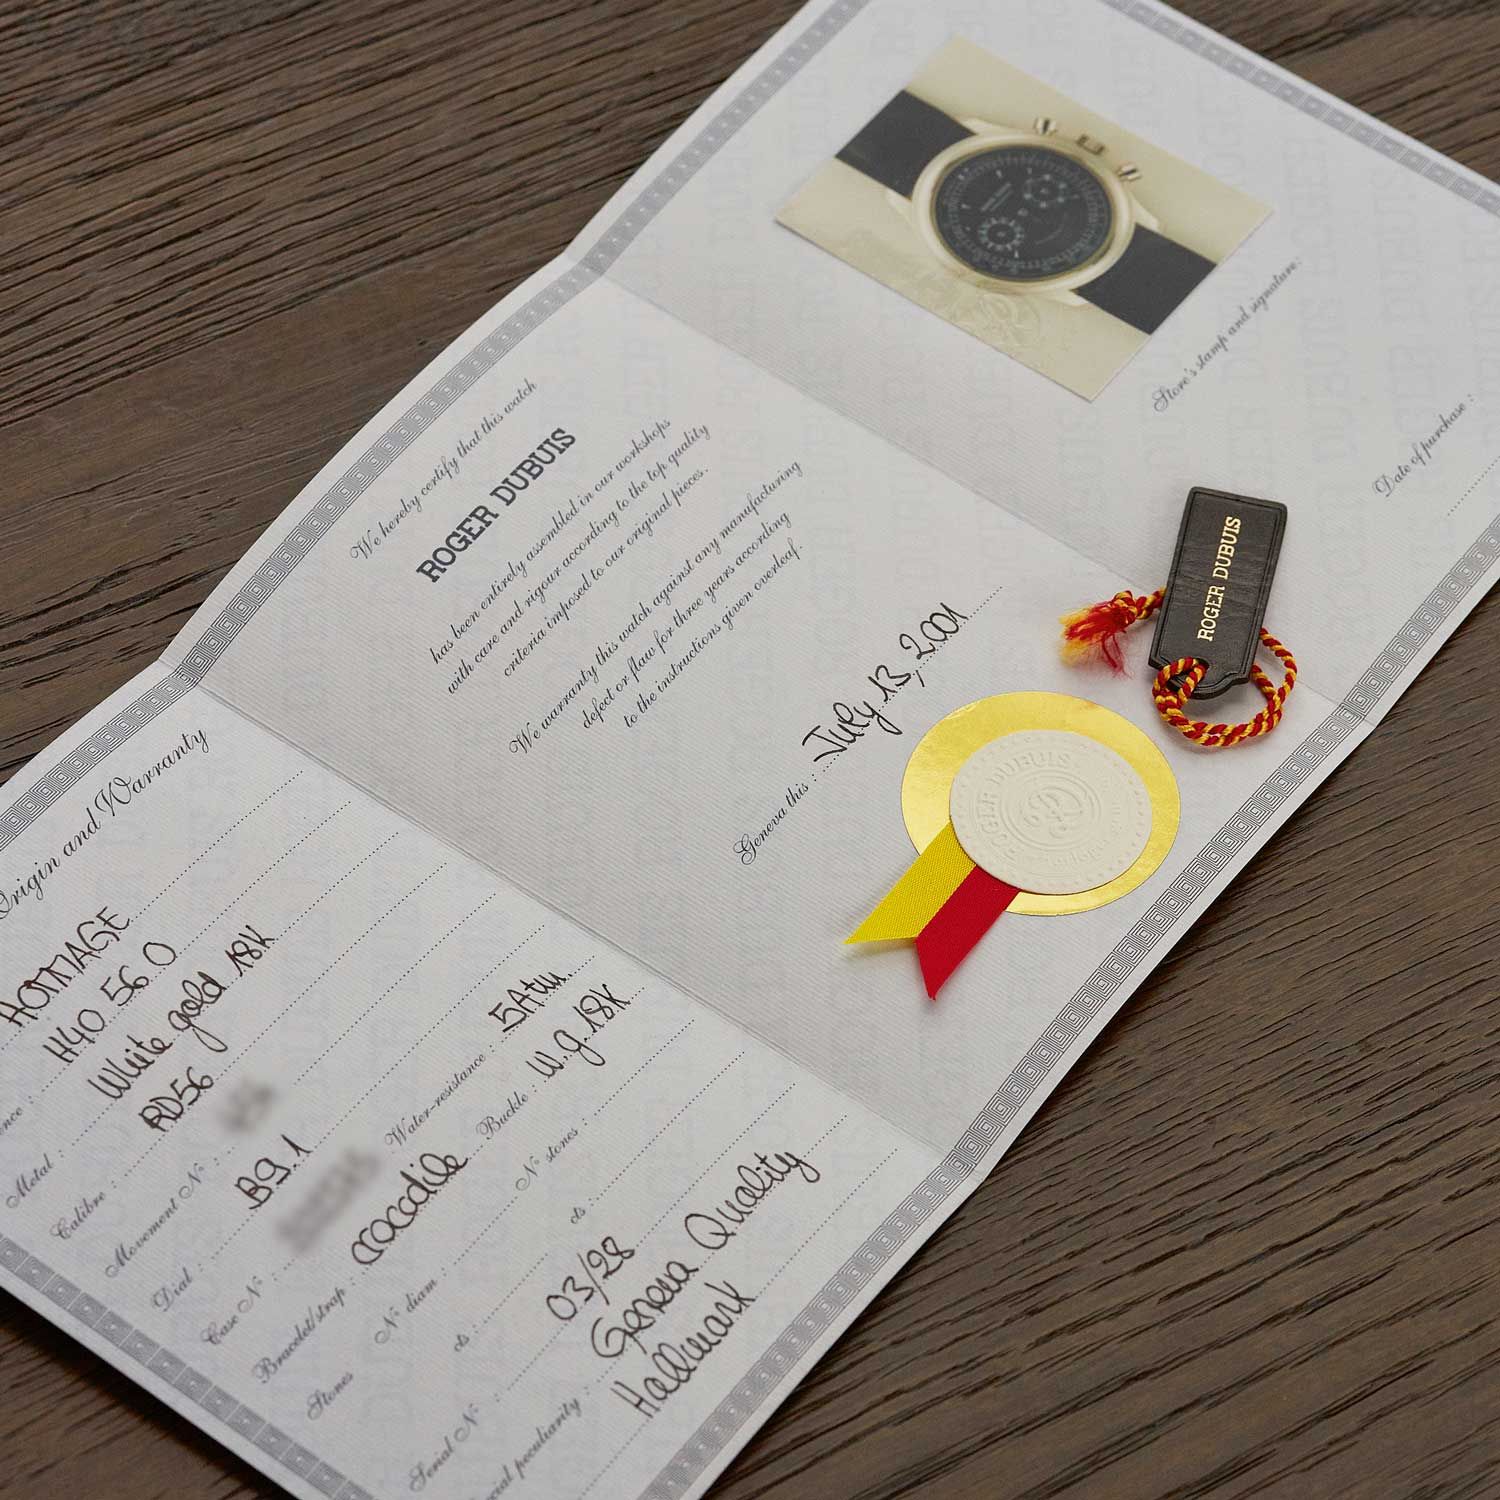 A Roger Dubuis Certificate of Origin and Guarantee from 2001